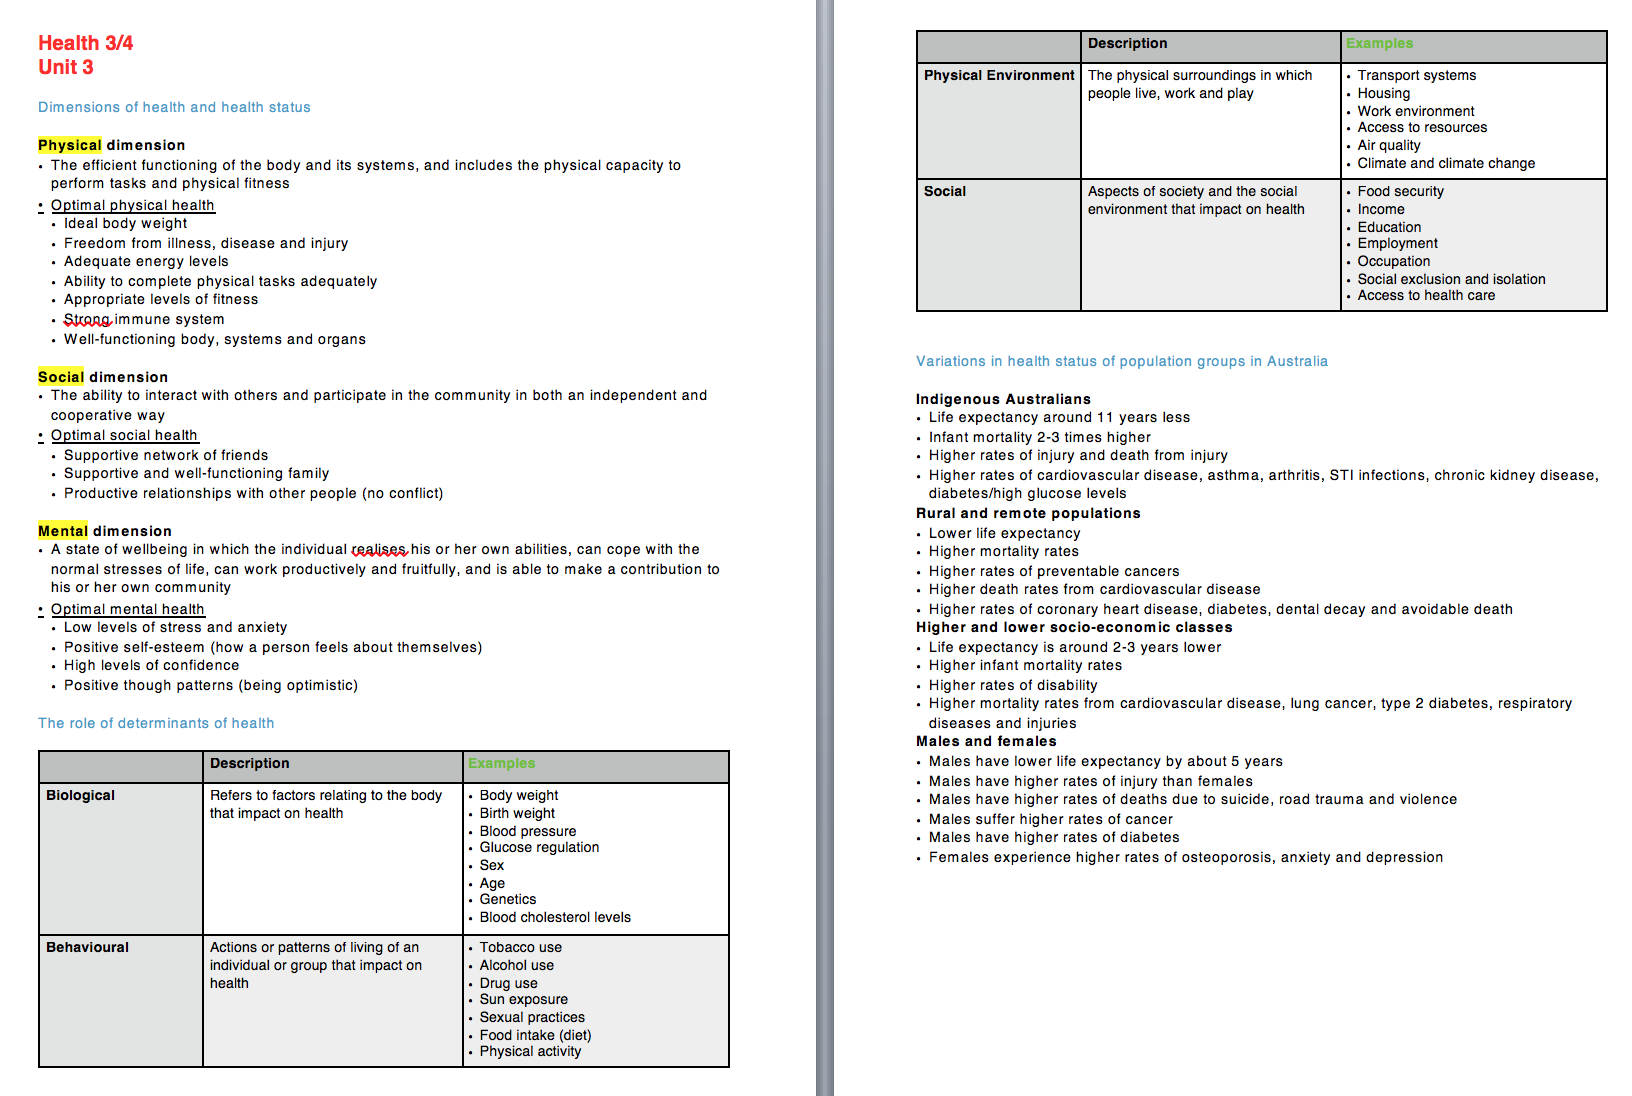 health and human development sac 1 Vce health and human development - unit 3 the following document includes a lesson plan that i devised to deliver to unit 3/4 health and human development students.